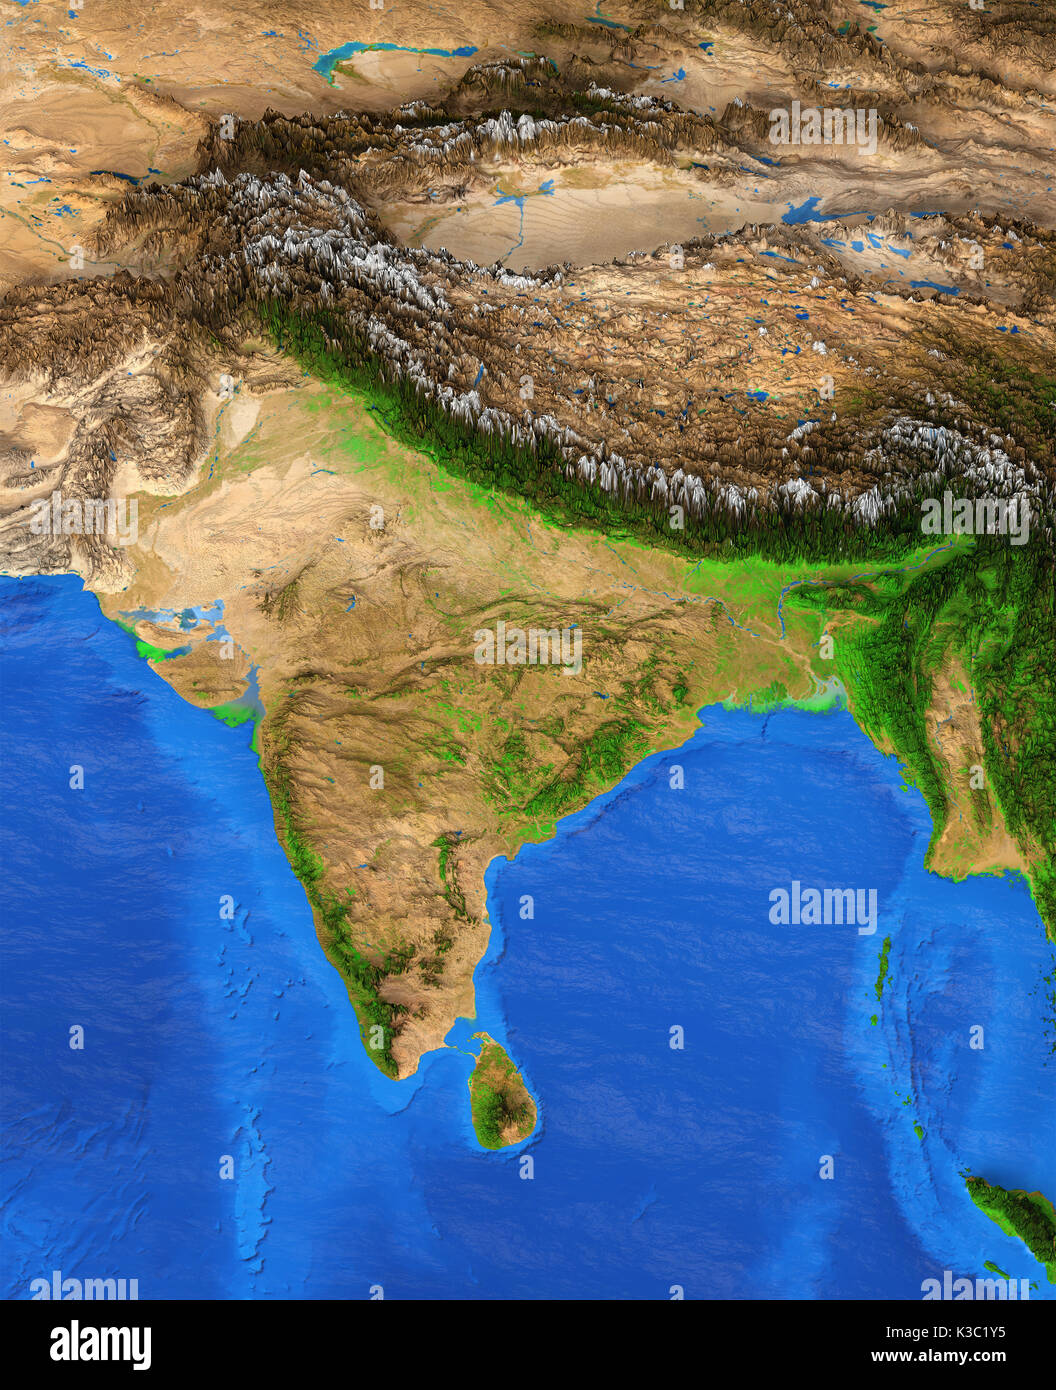 Setelight Map Of India.Map Of India Detailed Satellite View Of The Earth And Its Landforms